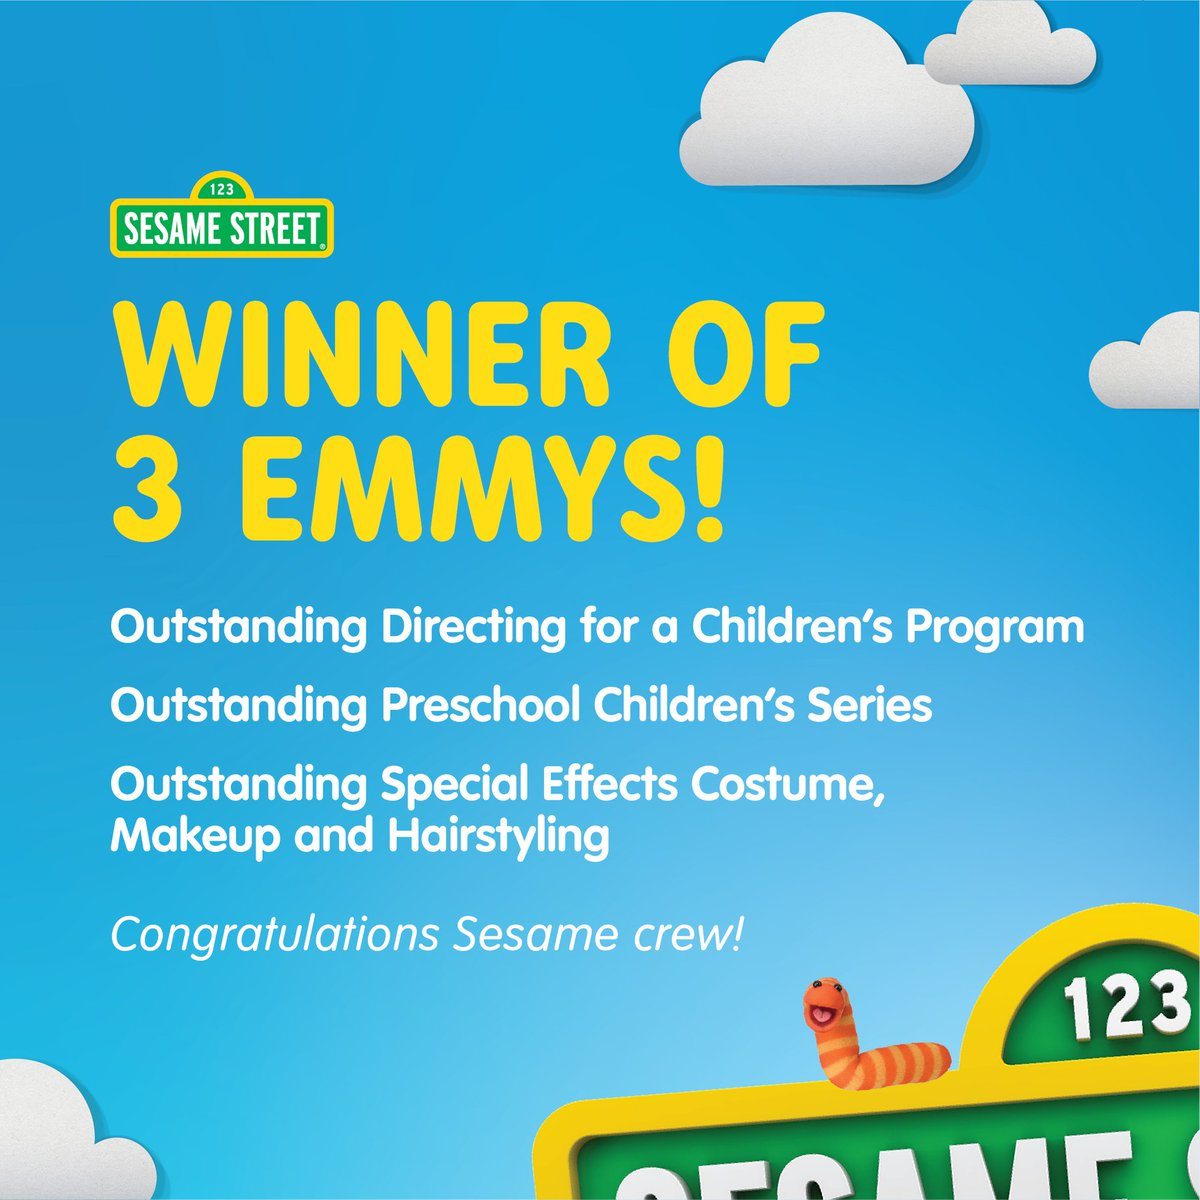 Proud to be one of the live-action directors for Sesame Street in this season too! 3 Emmys!!! Yay! Me wants cookies to celebrate! #SesameStreet #Emmys2020